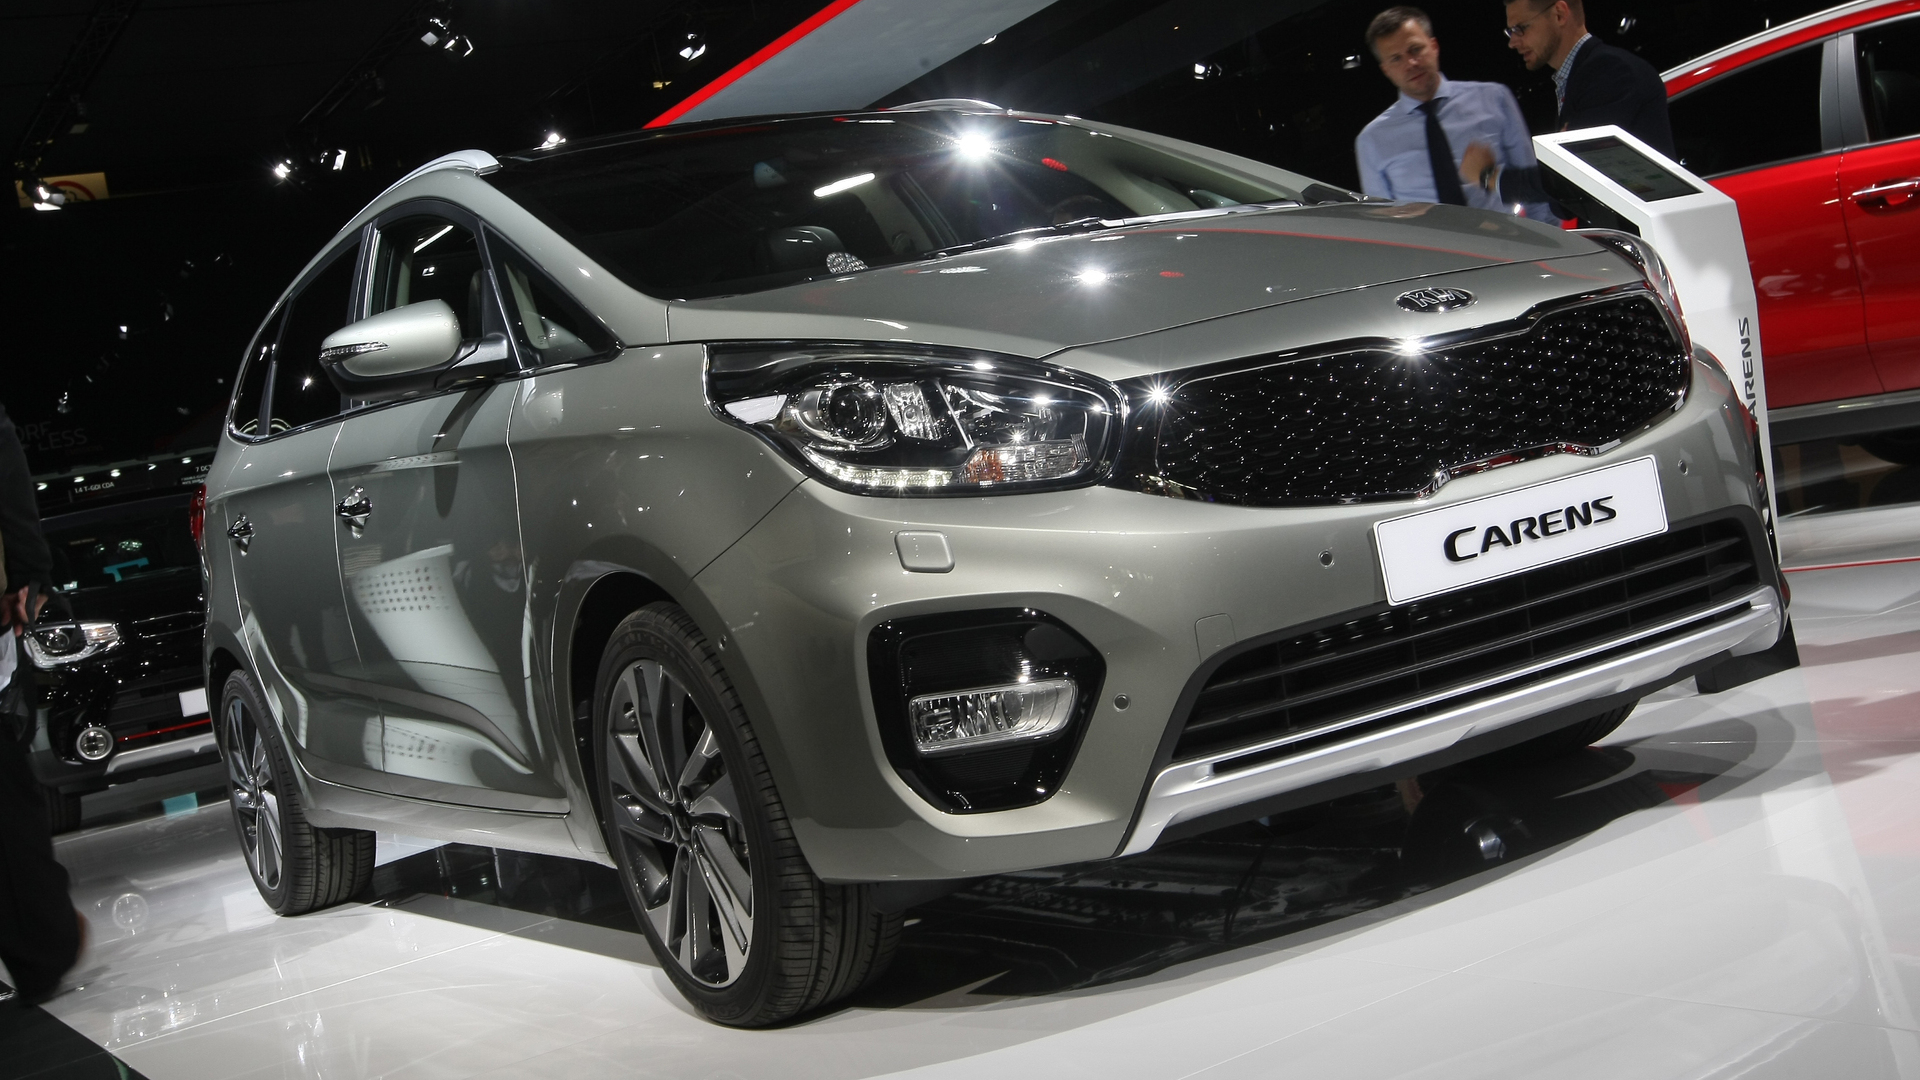 kia carens facelift arrives in paris with minor changes. Black Bedroom Furniture Sets. Home Design Ideas